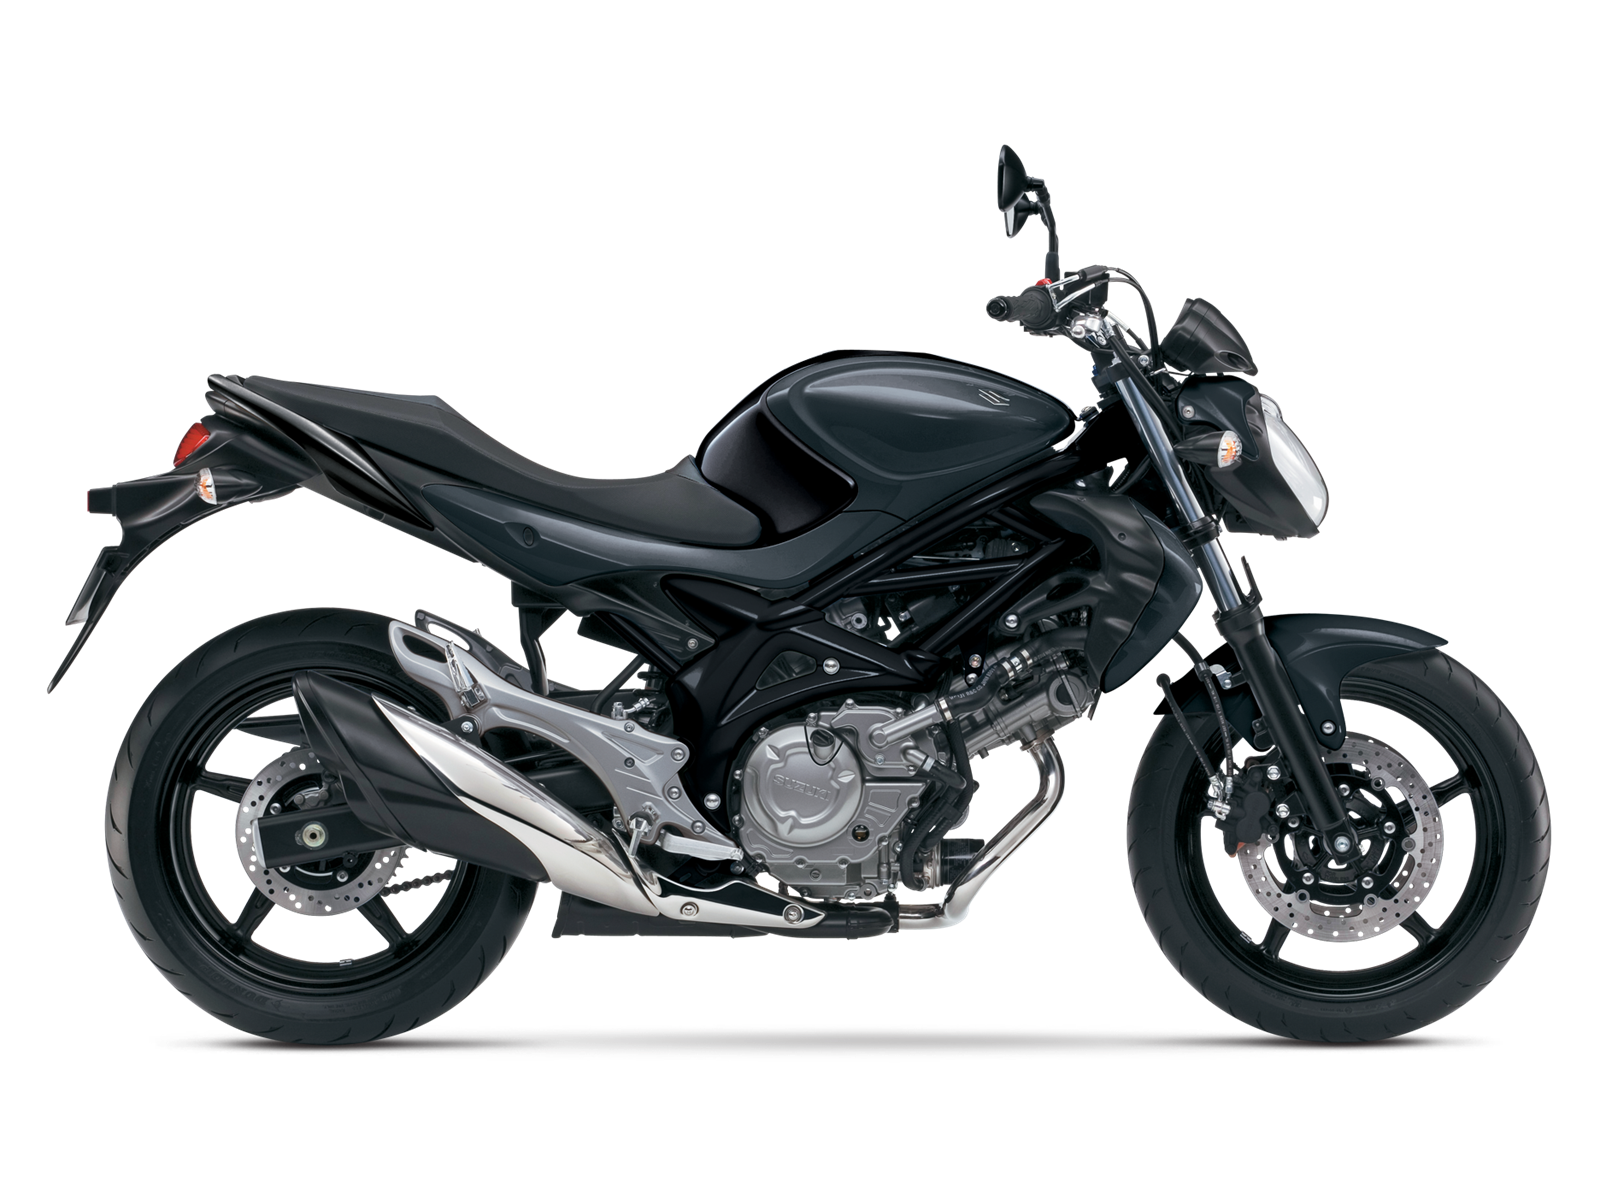 Black Motorcycle Hd Png image #20330